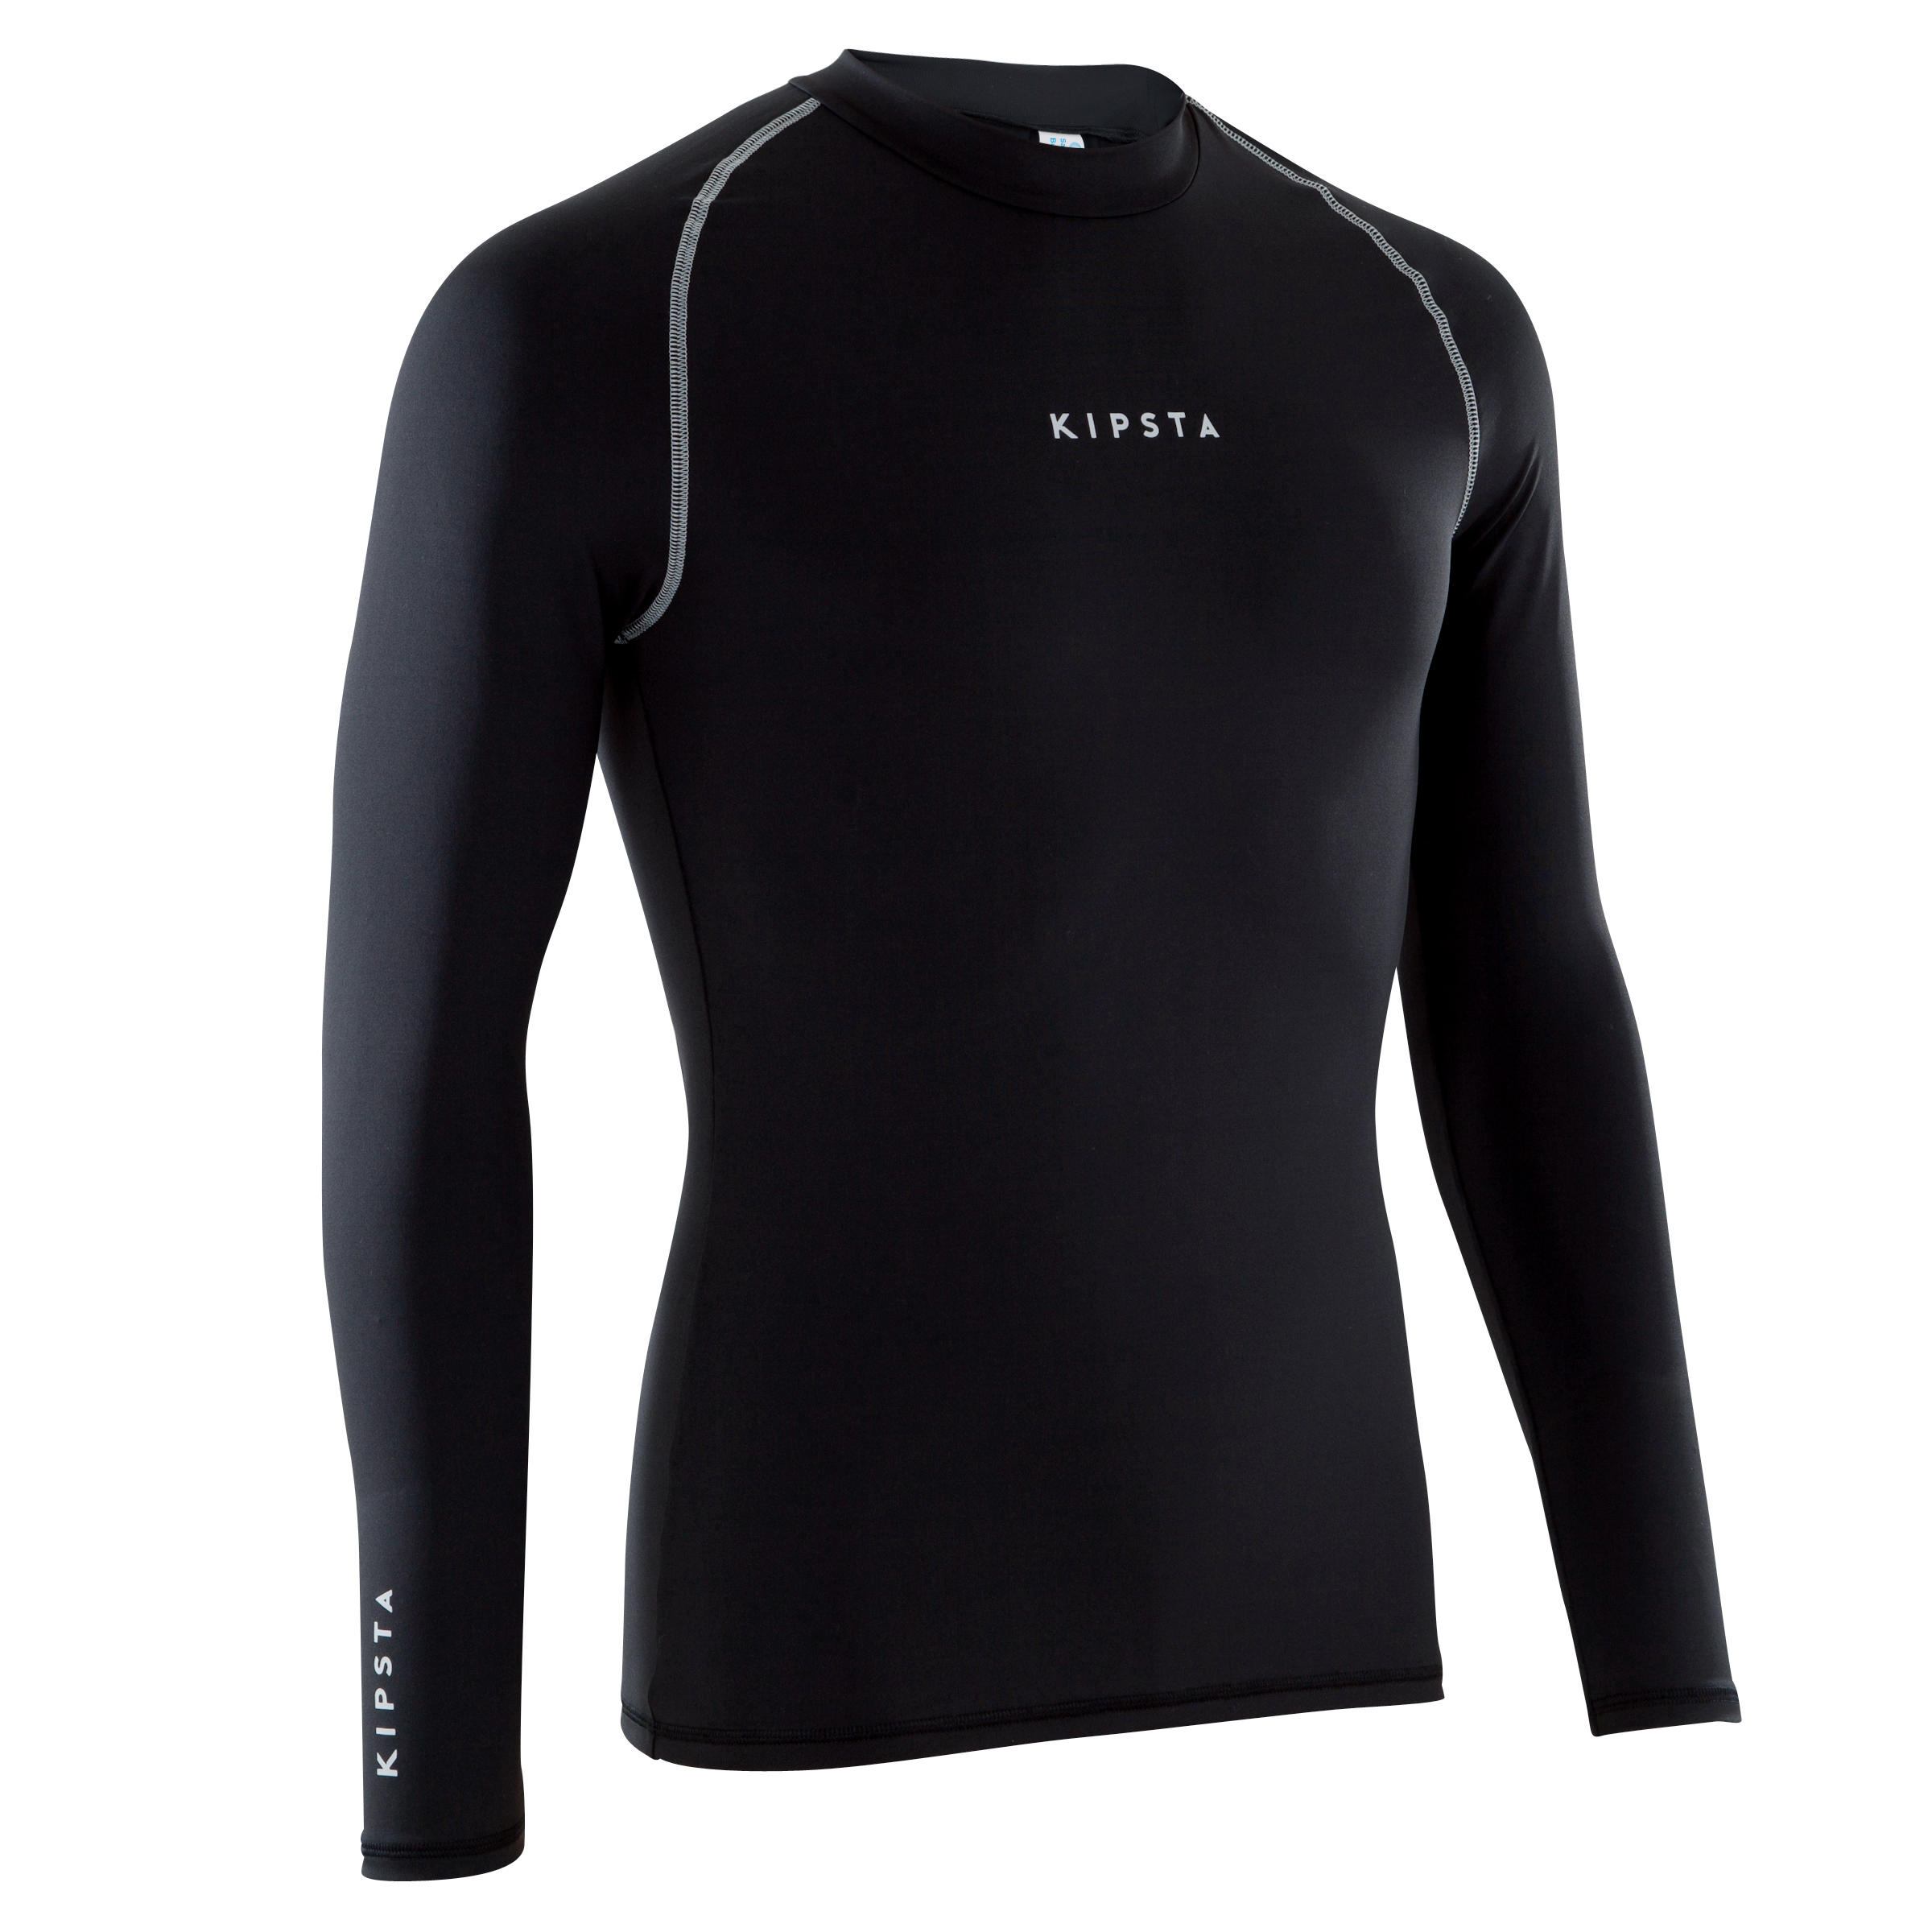 Keepdry 100 Adult Breathable Long-Sleeved Base Layer - Black